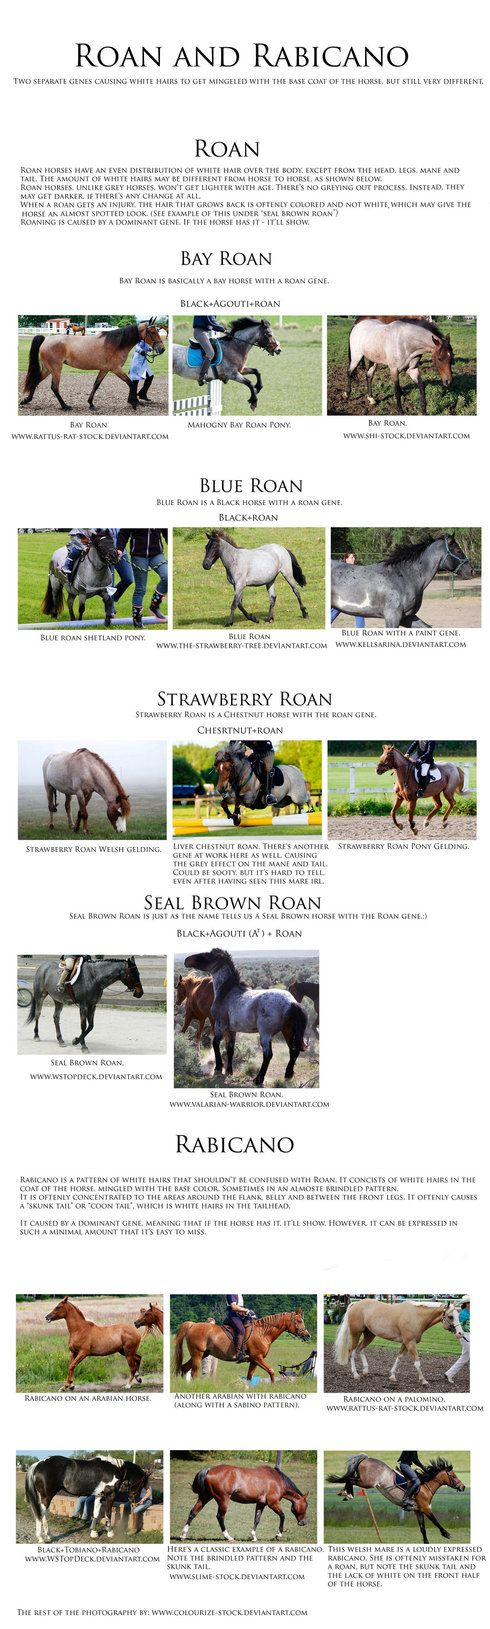 330 best pferdefarben images on pinterest beautiful horses next up genetics chart edit added a whole bunch of stuff im really glad with the response ive had from this eveyone is so friendly and eager to learn nvjuhfo Choice Image